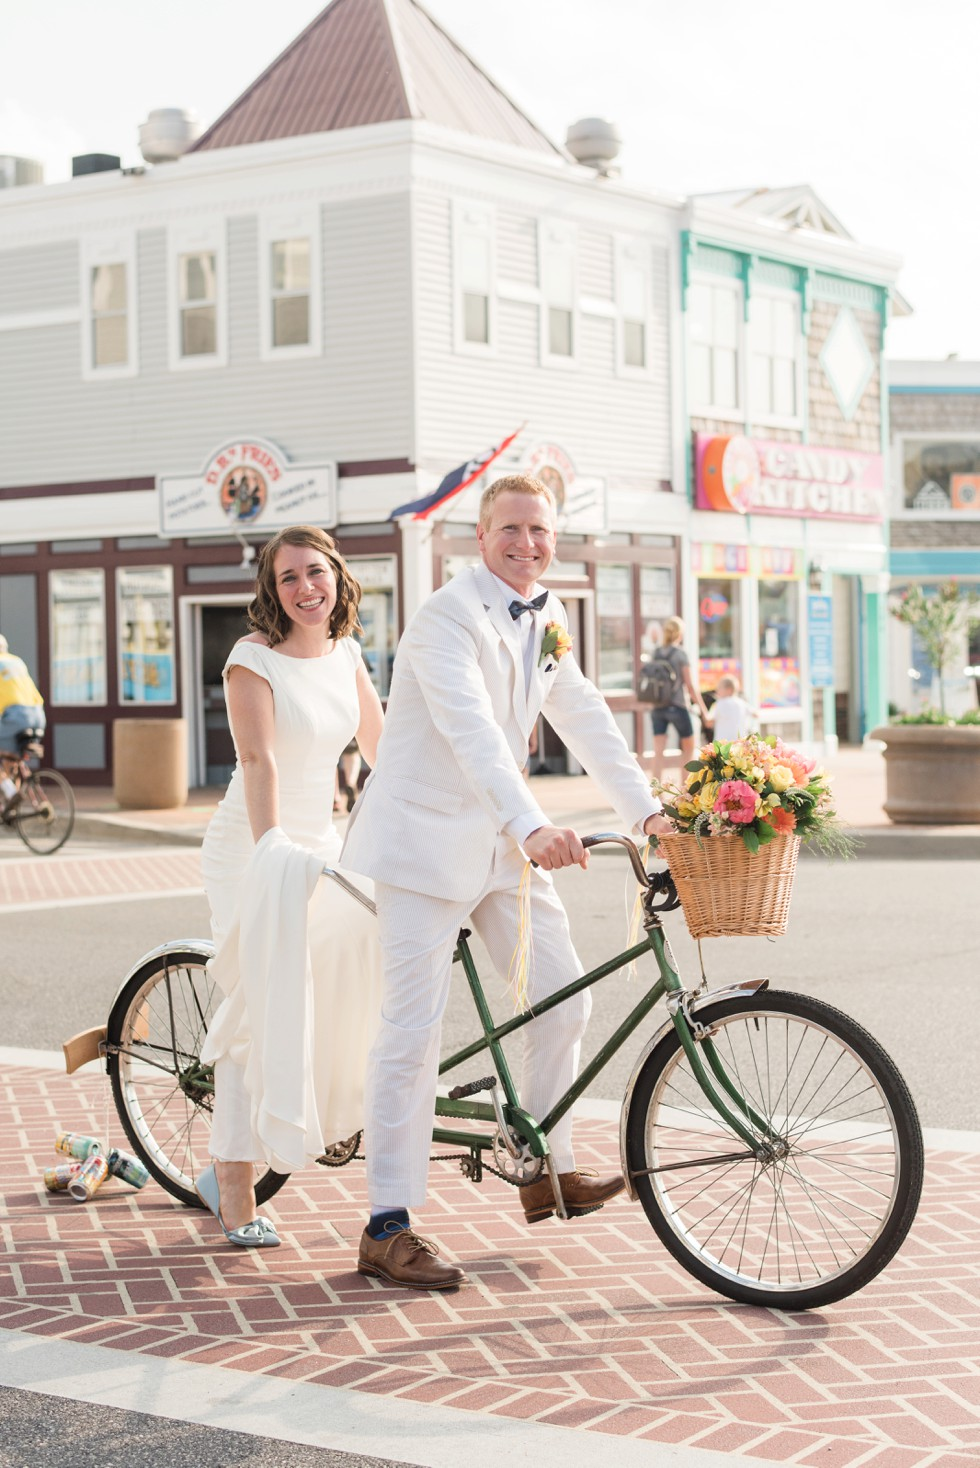 Beach bicycle built for two wedding